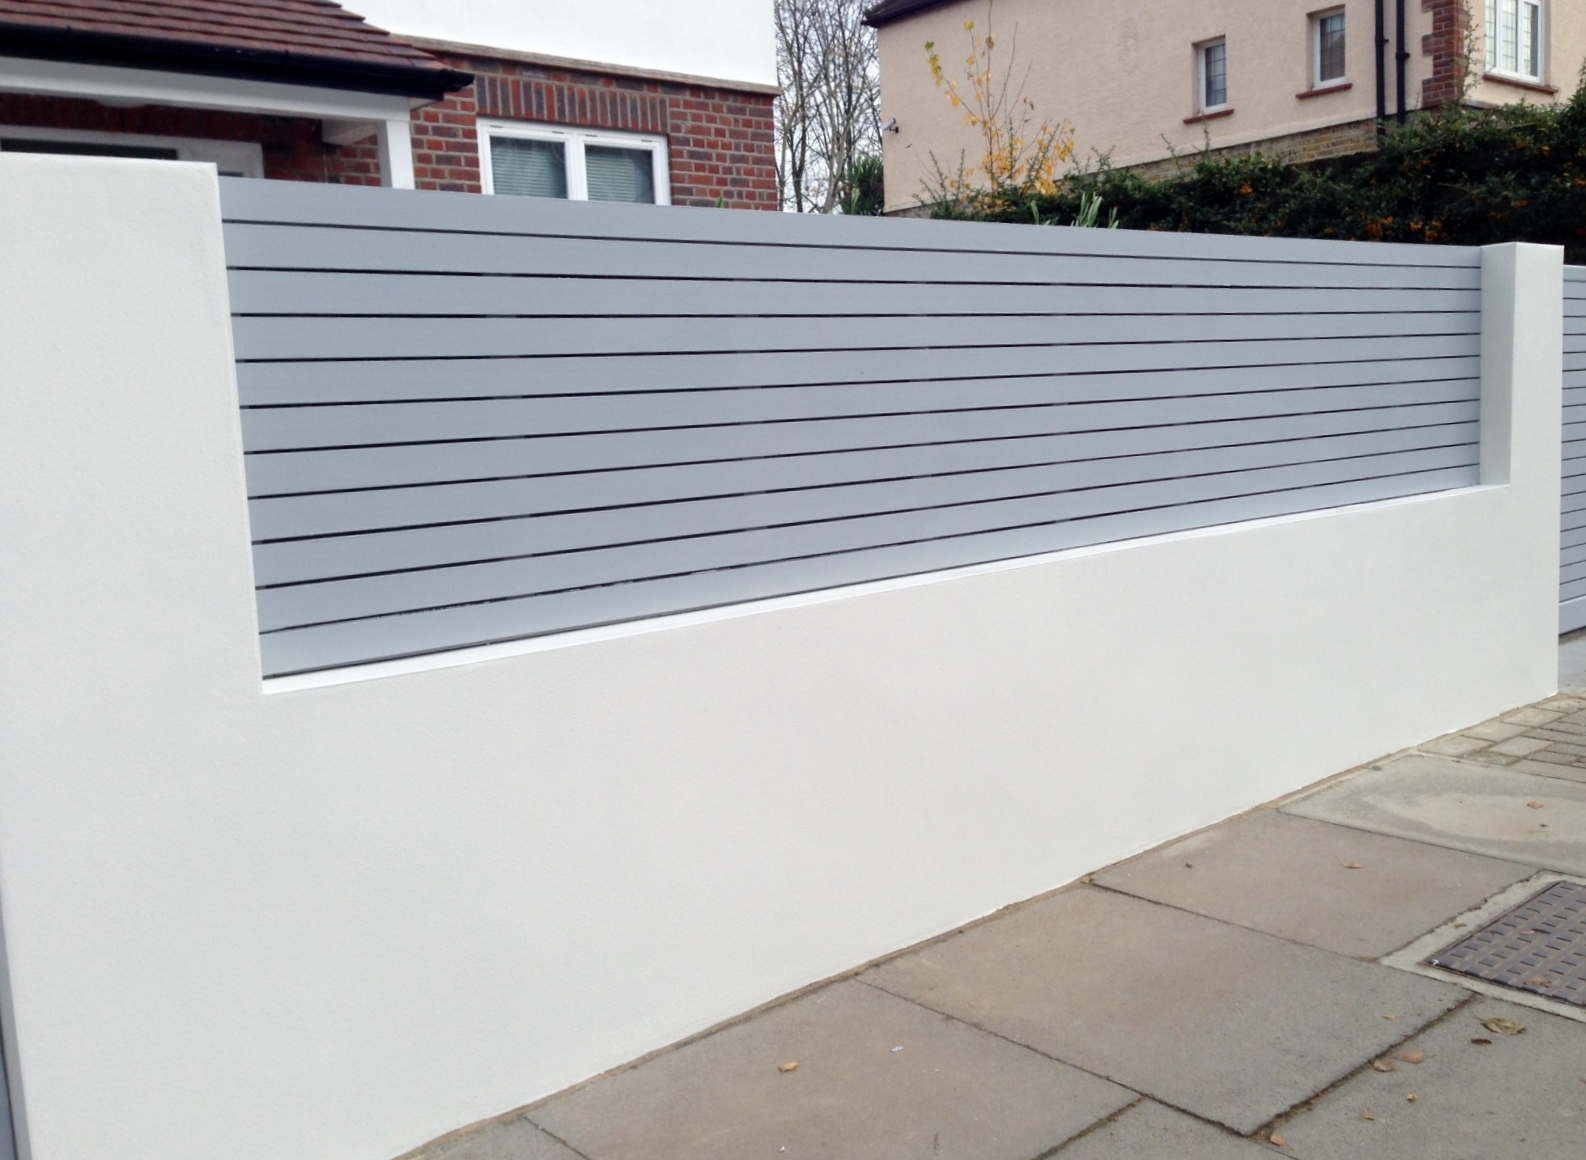 Front Boundary Wall Screen Automated Electronic Gate Installation Grey  Wooden Fence Bike Store Modern Garden Design Balham Clapham London ...